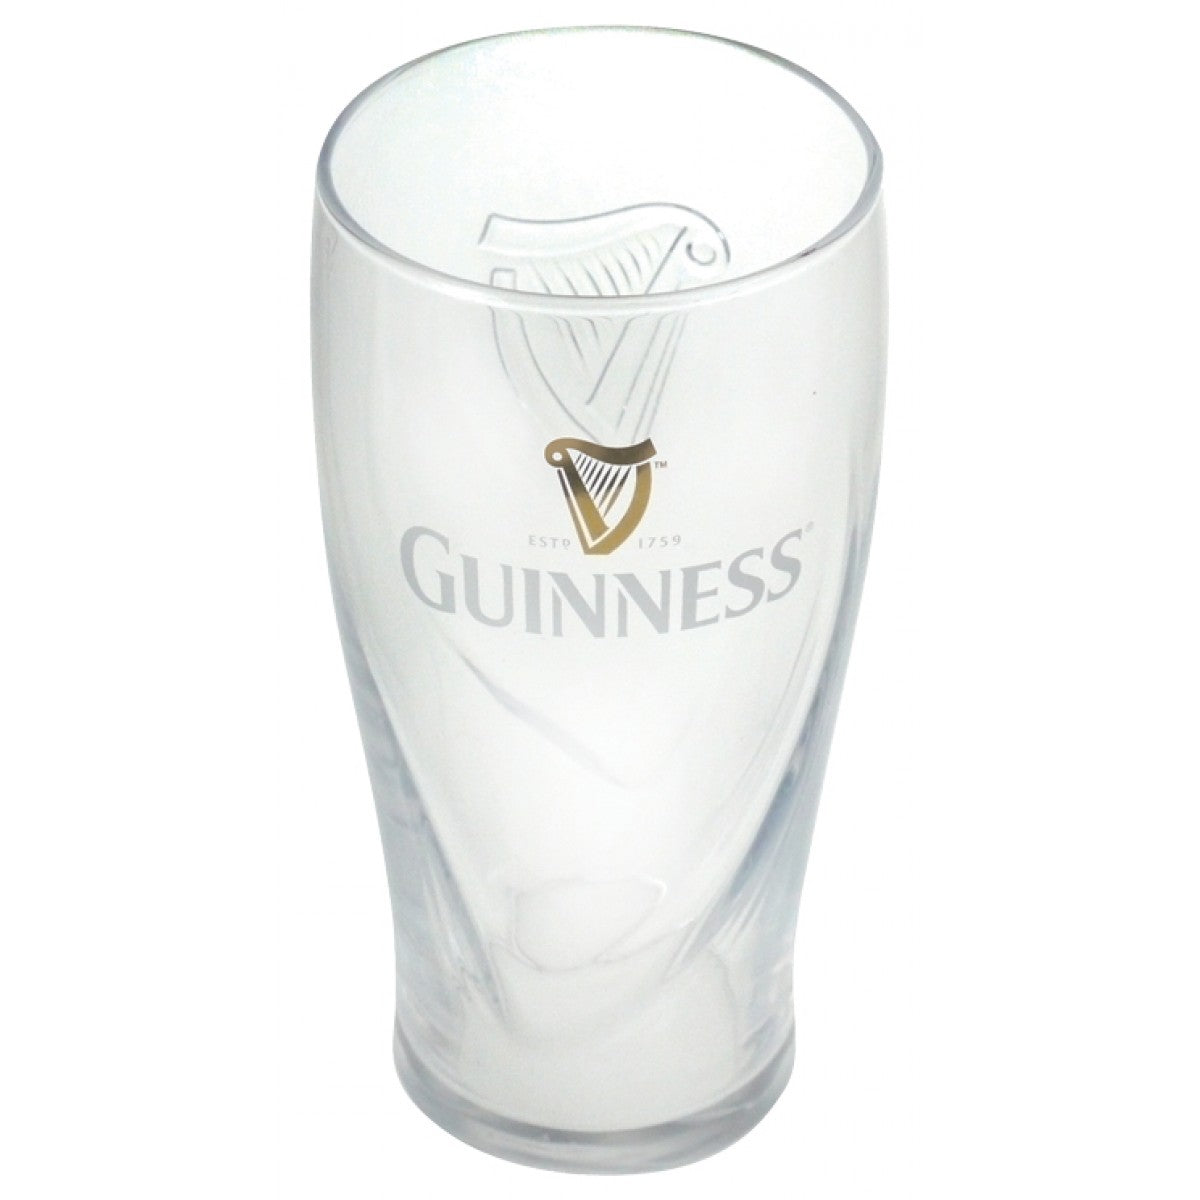 Official Guinness half pint glass with large clear Guinness harp on one side and a smaller gold harp and the word Guinness on the other.